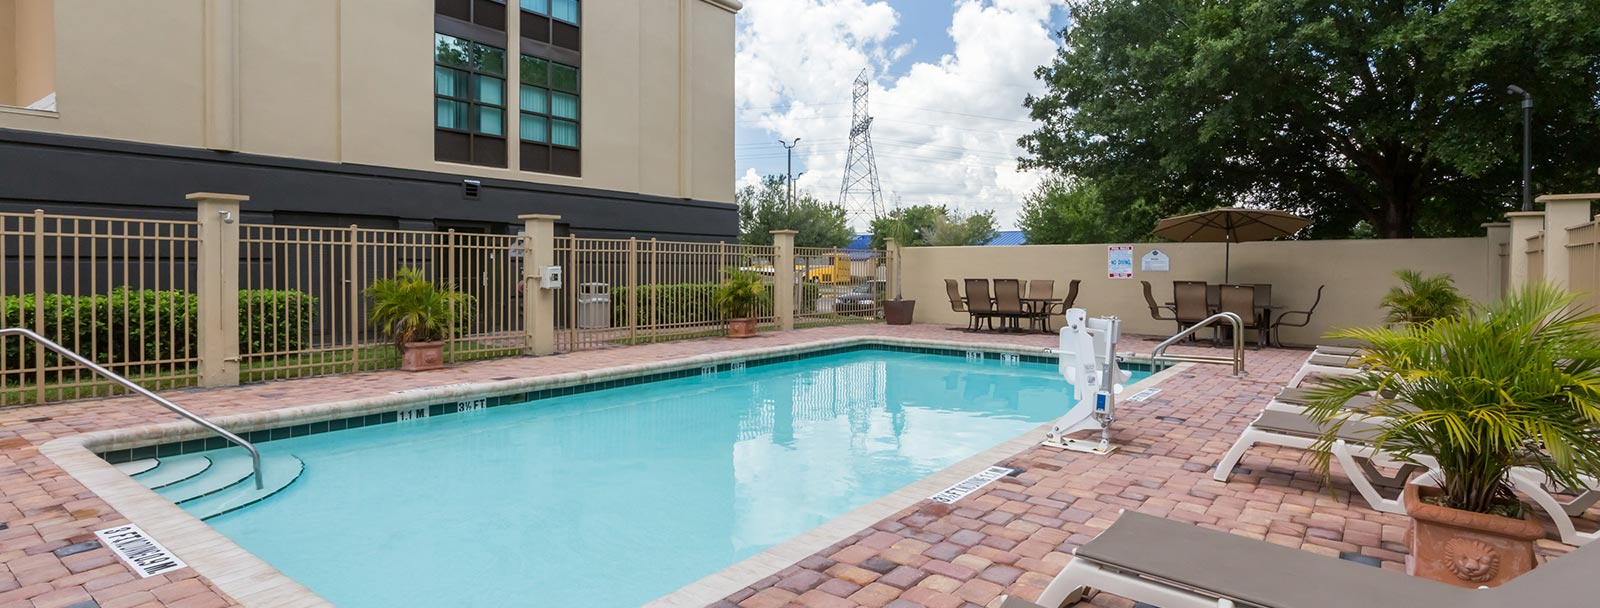 Services in Wingate by Wyndham Universal Studios & Convention Center, Orlando